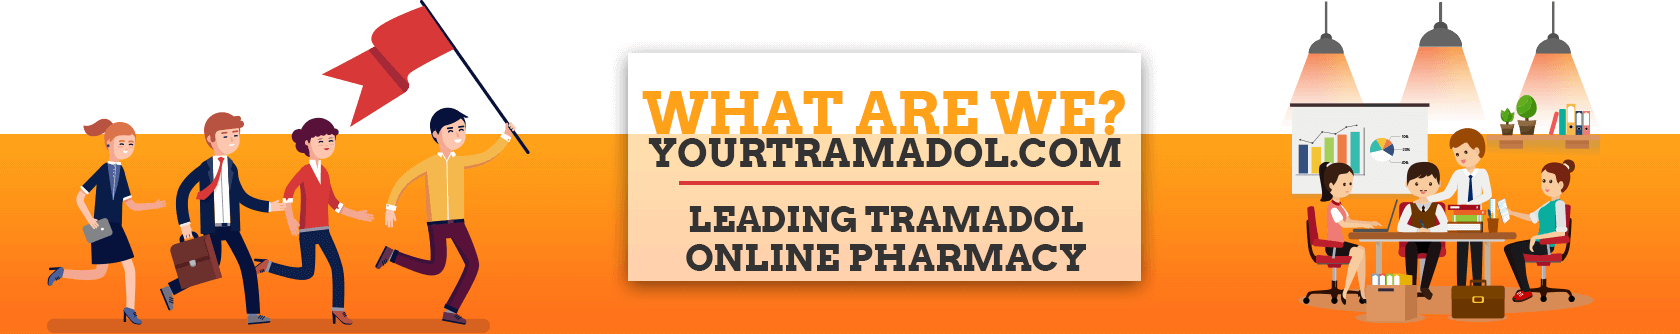 about yourtramadol.com